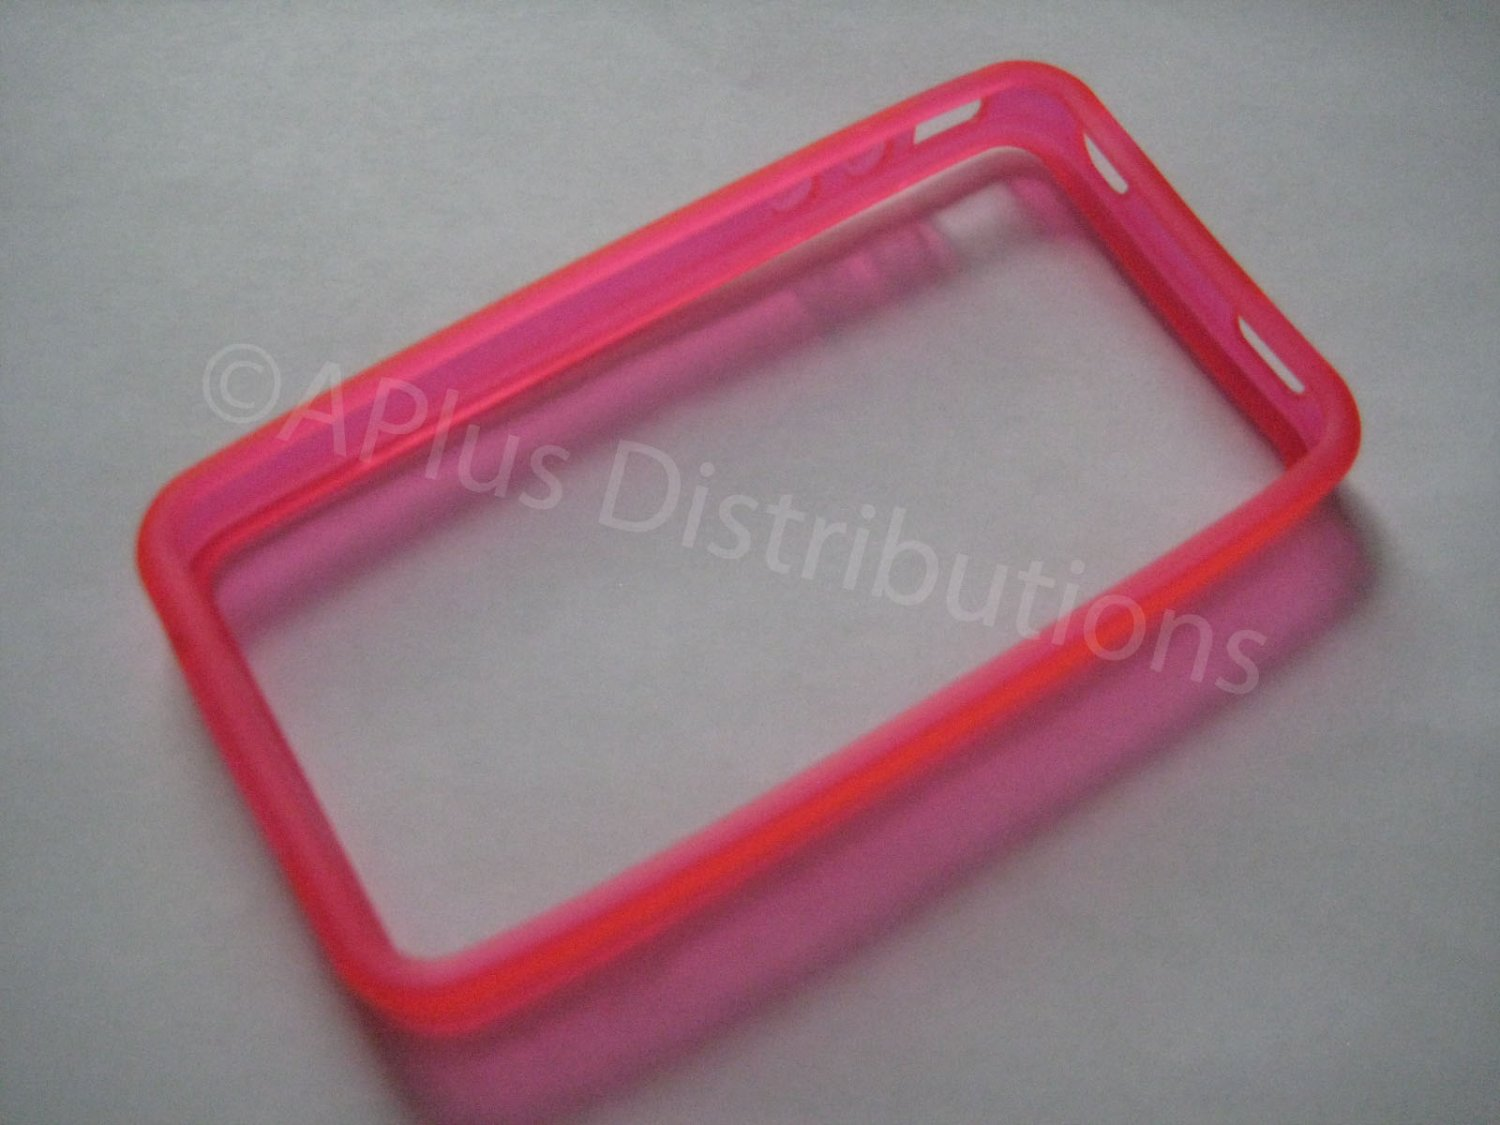 New Hot Pink Bumper Design TPU Cover For iPhone 4 - (0046)